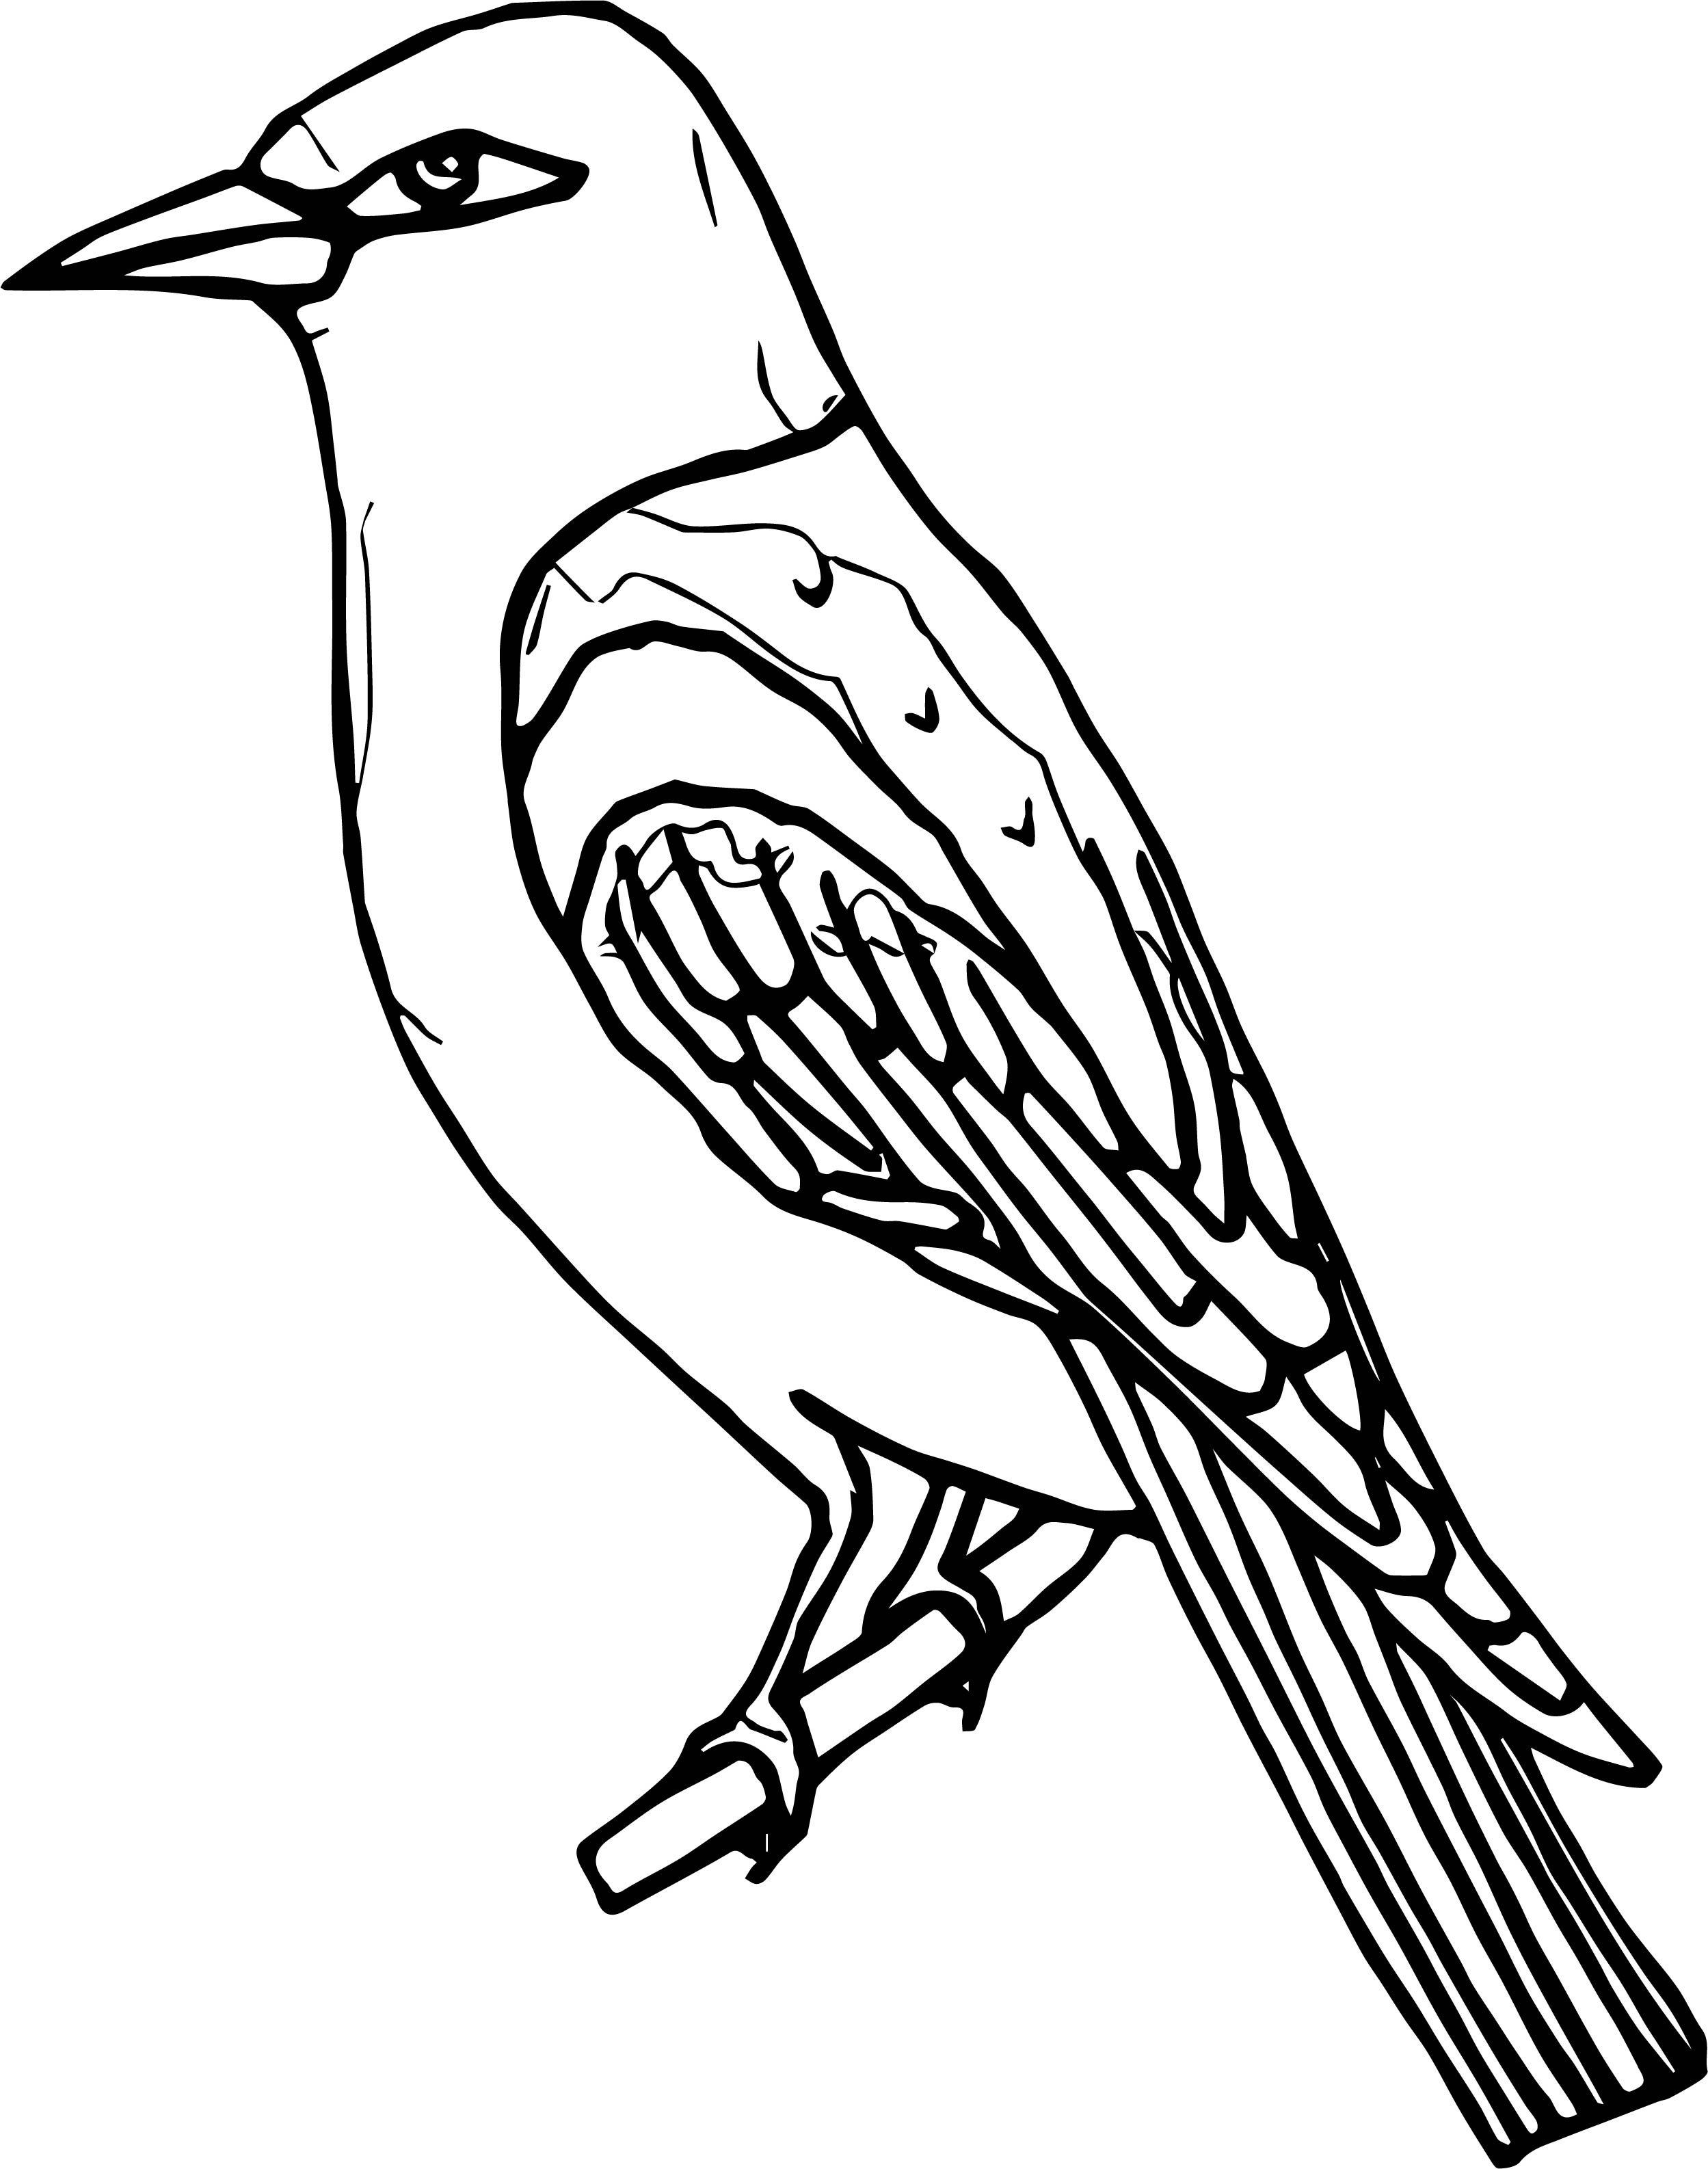 Have Bird Coloring Page